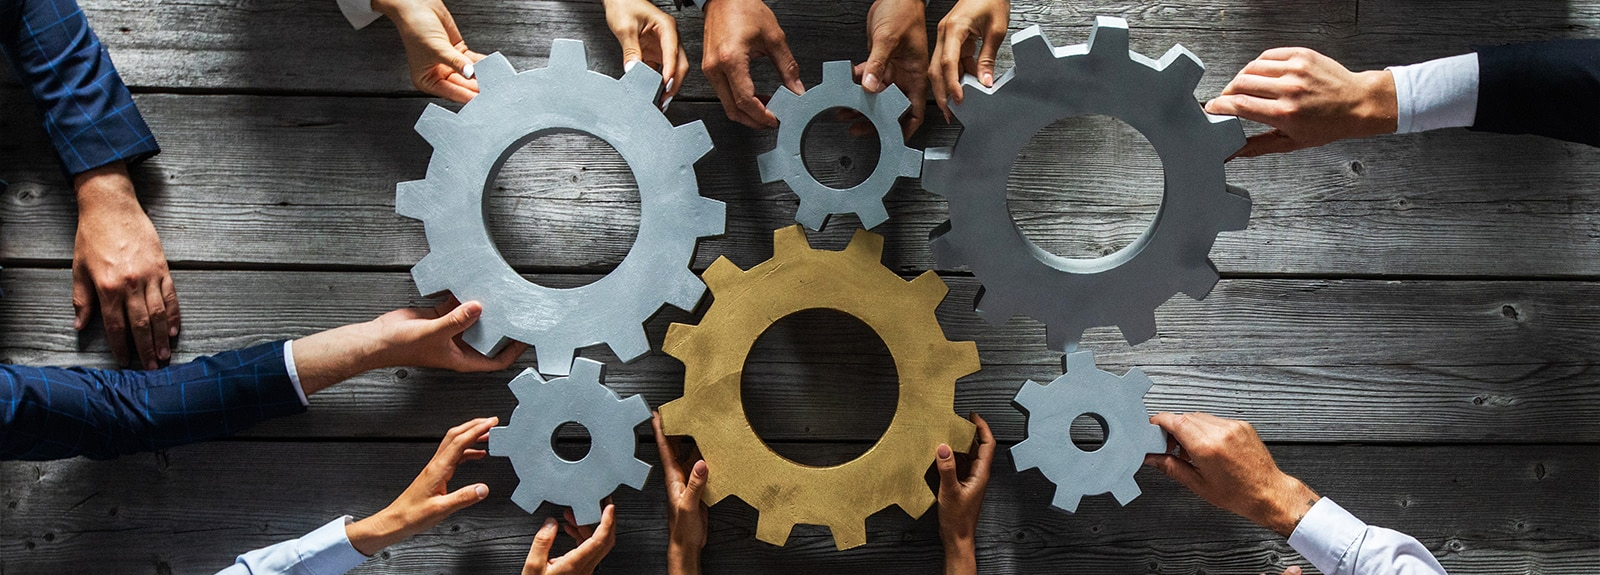 Cogs and gears being assembled together by multiple hands.